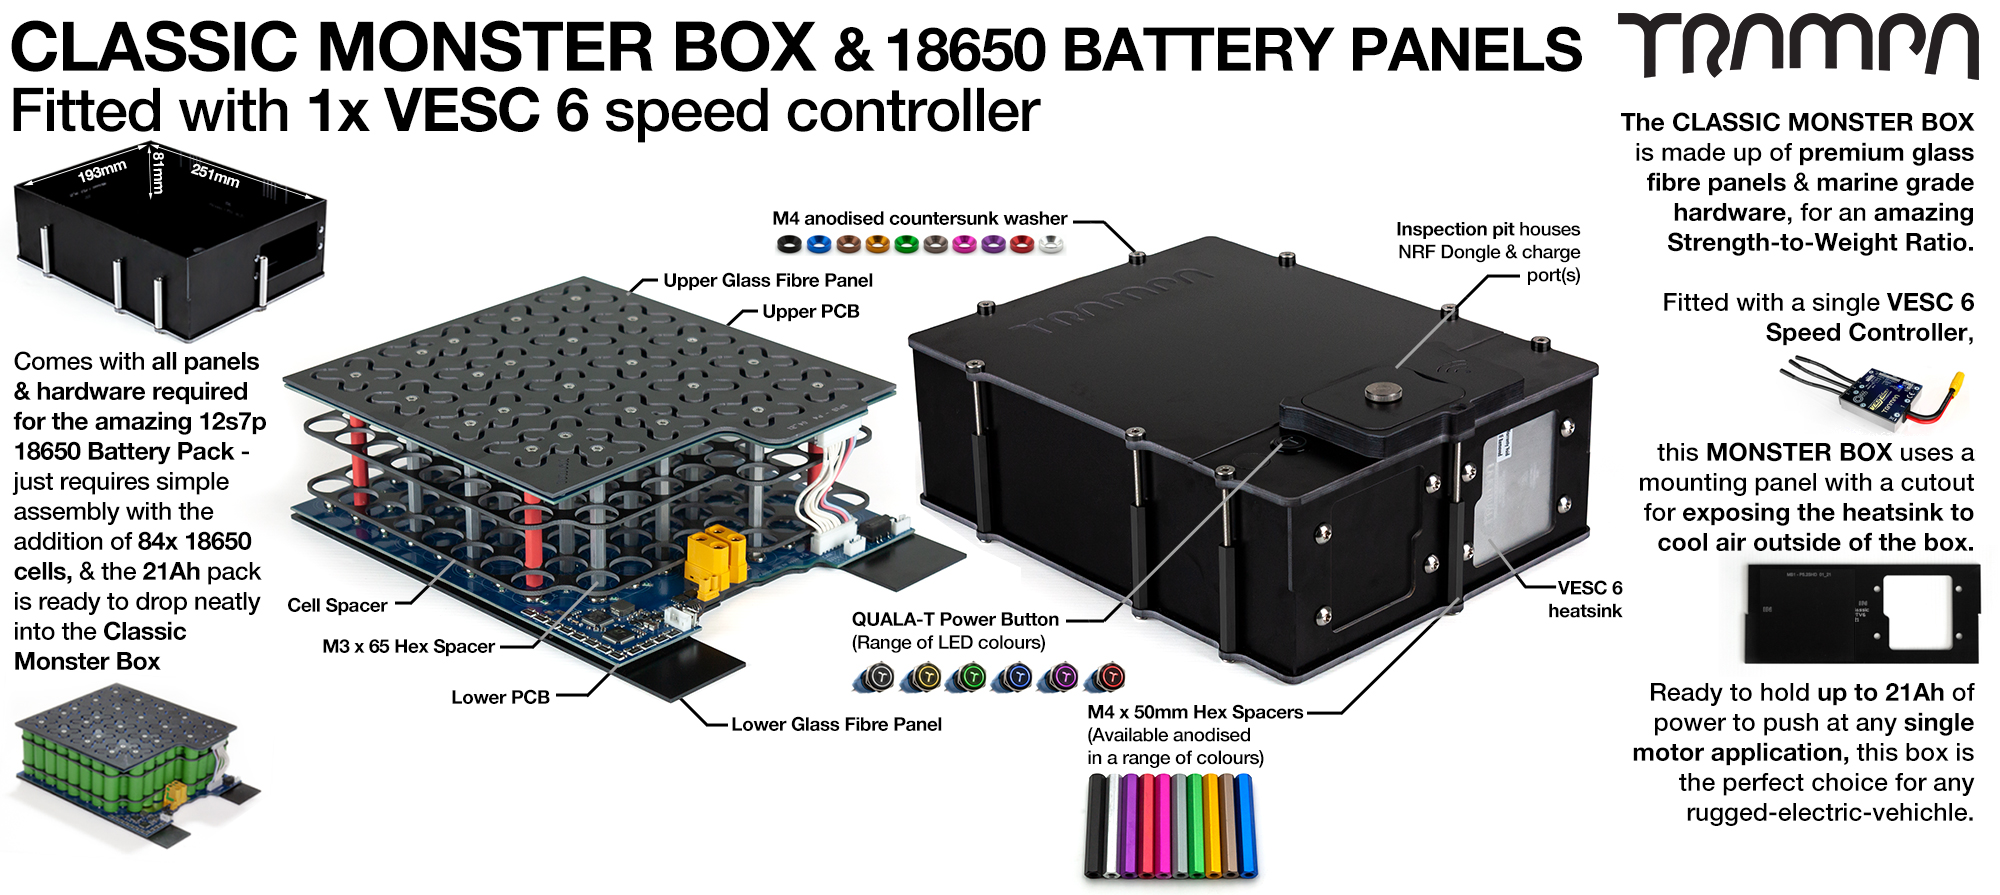 MONSTER Box MkIV - with 18650 PCB Pack & 1x VESC 6 NRF fitted - NO CELLS - PCB based Battery Pack has Integrated Battery Management System (BMS) - Supplied with NO Cells